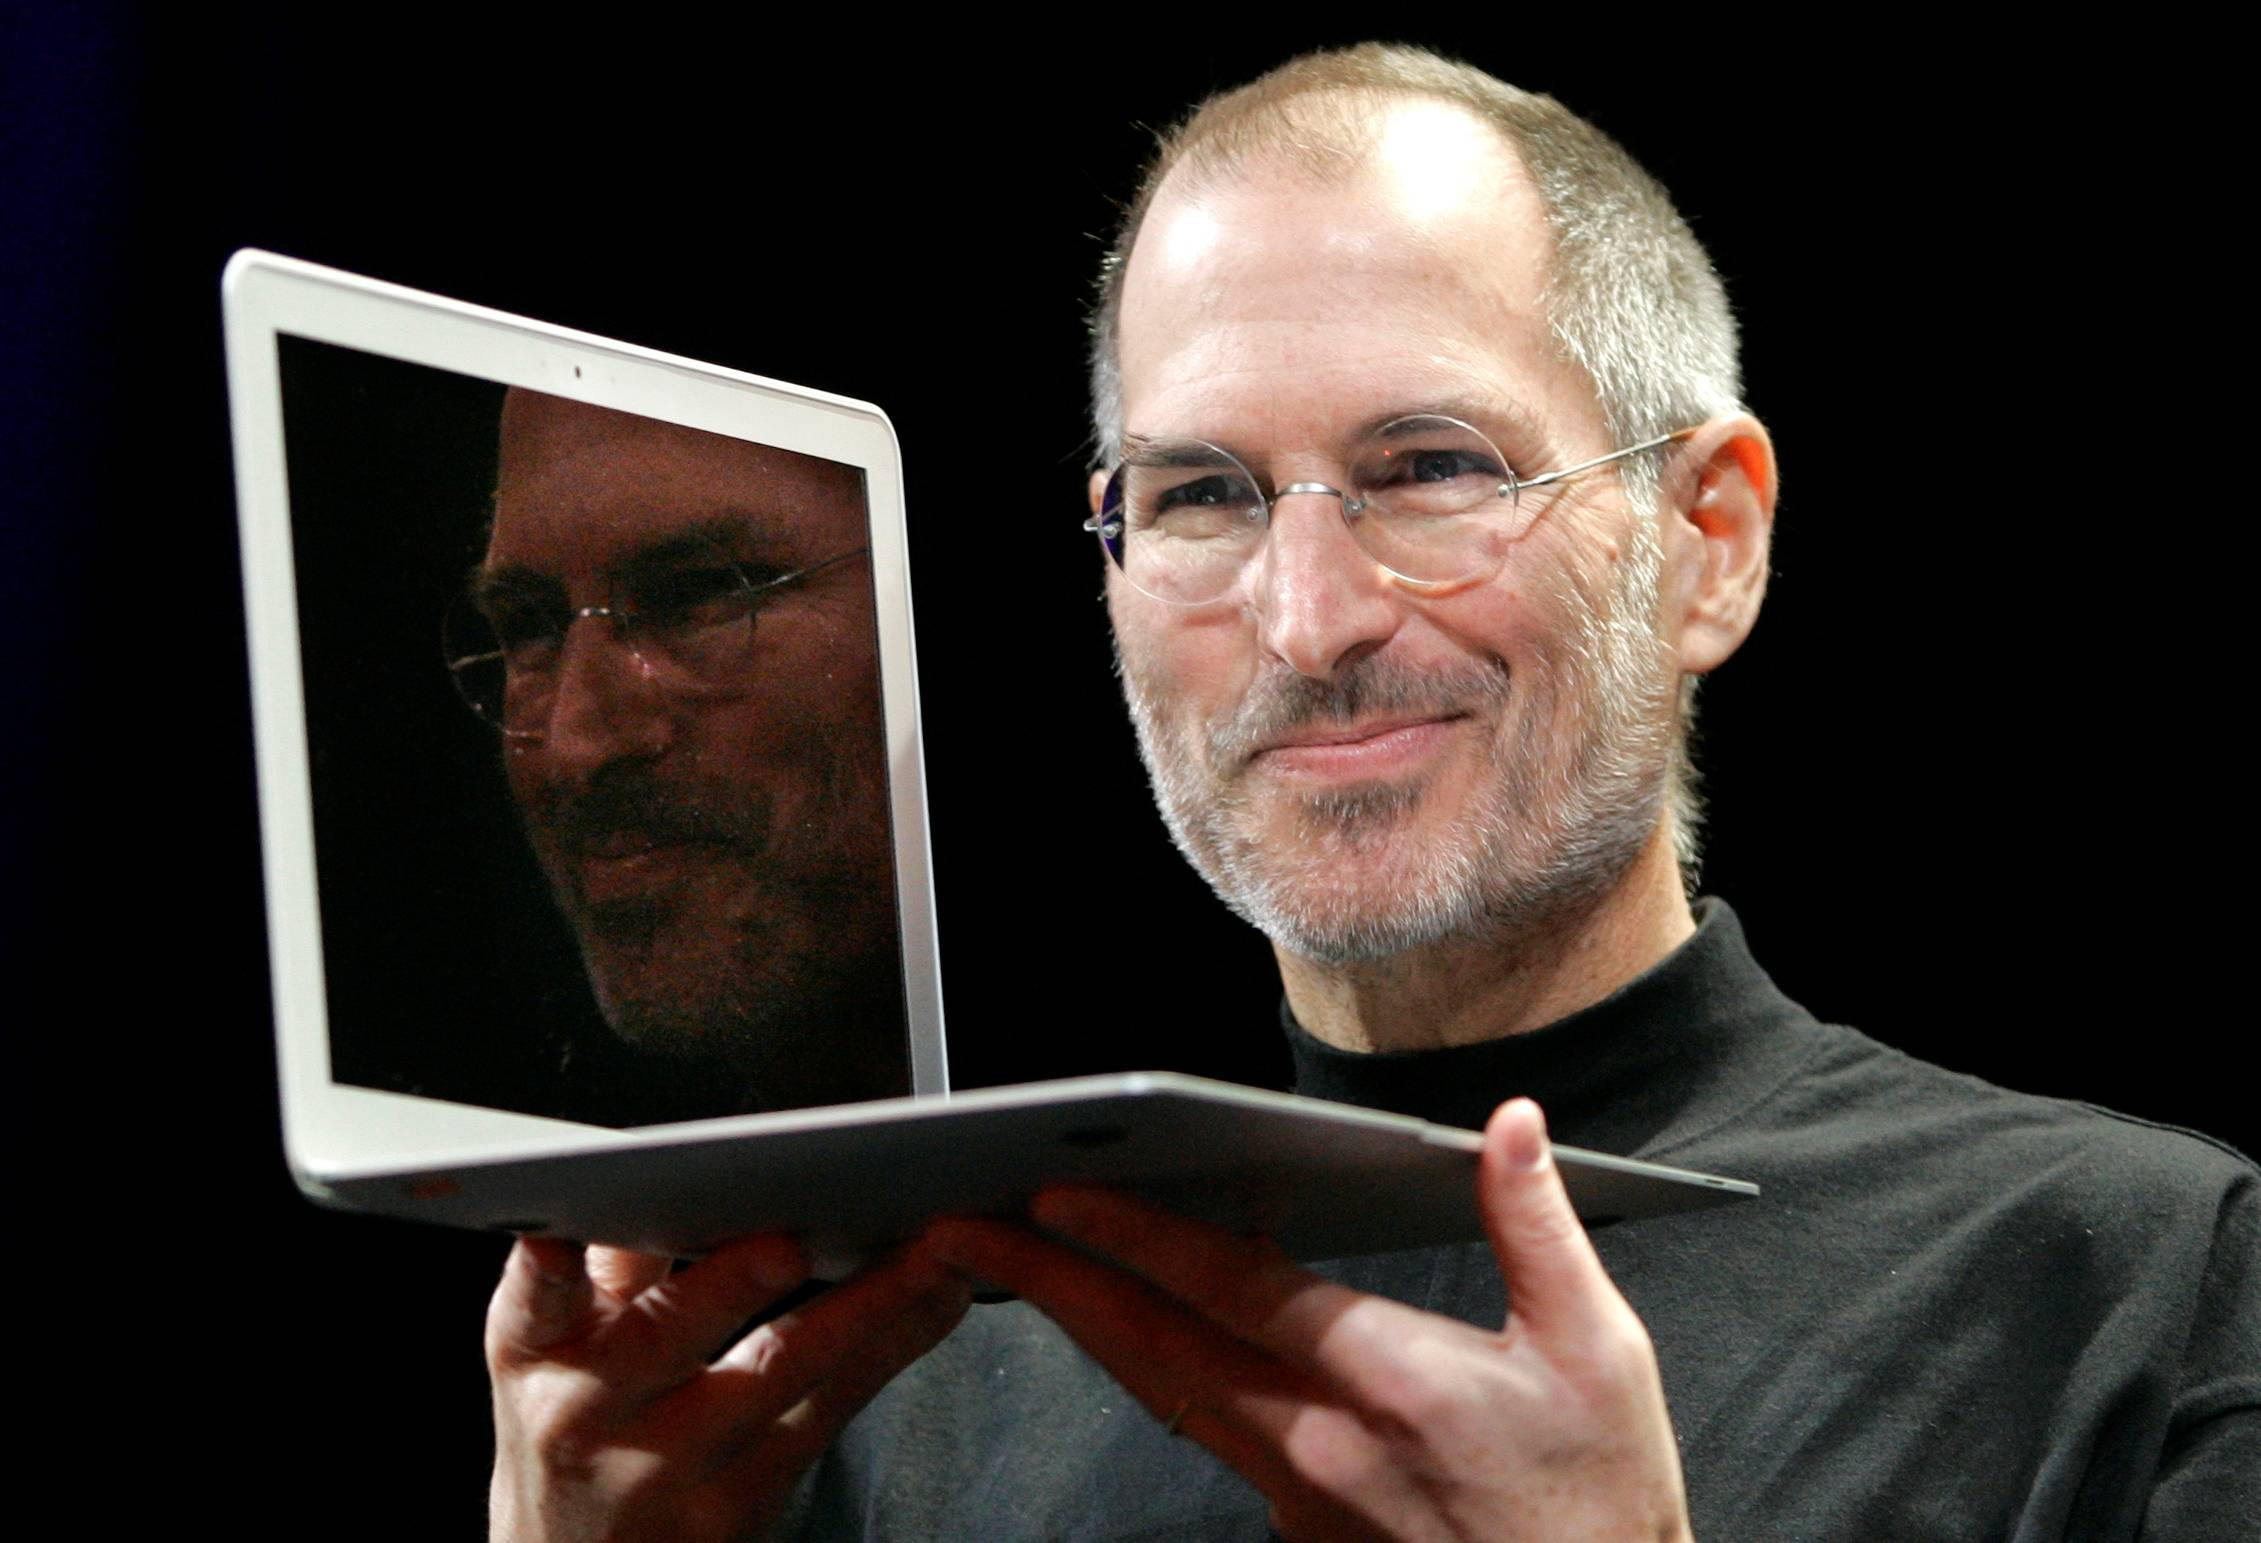 When Steve Jobs went on medical leave from Apple in early 2011, many criticized the company for not being more open about the specifics of his health problem.